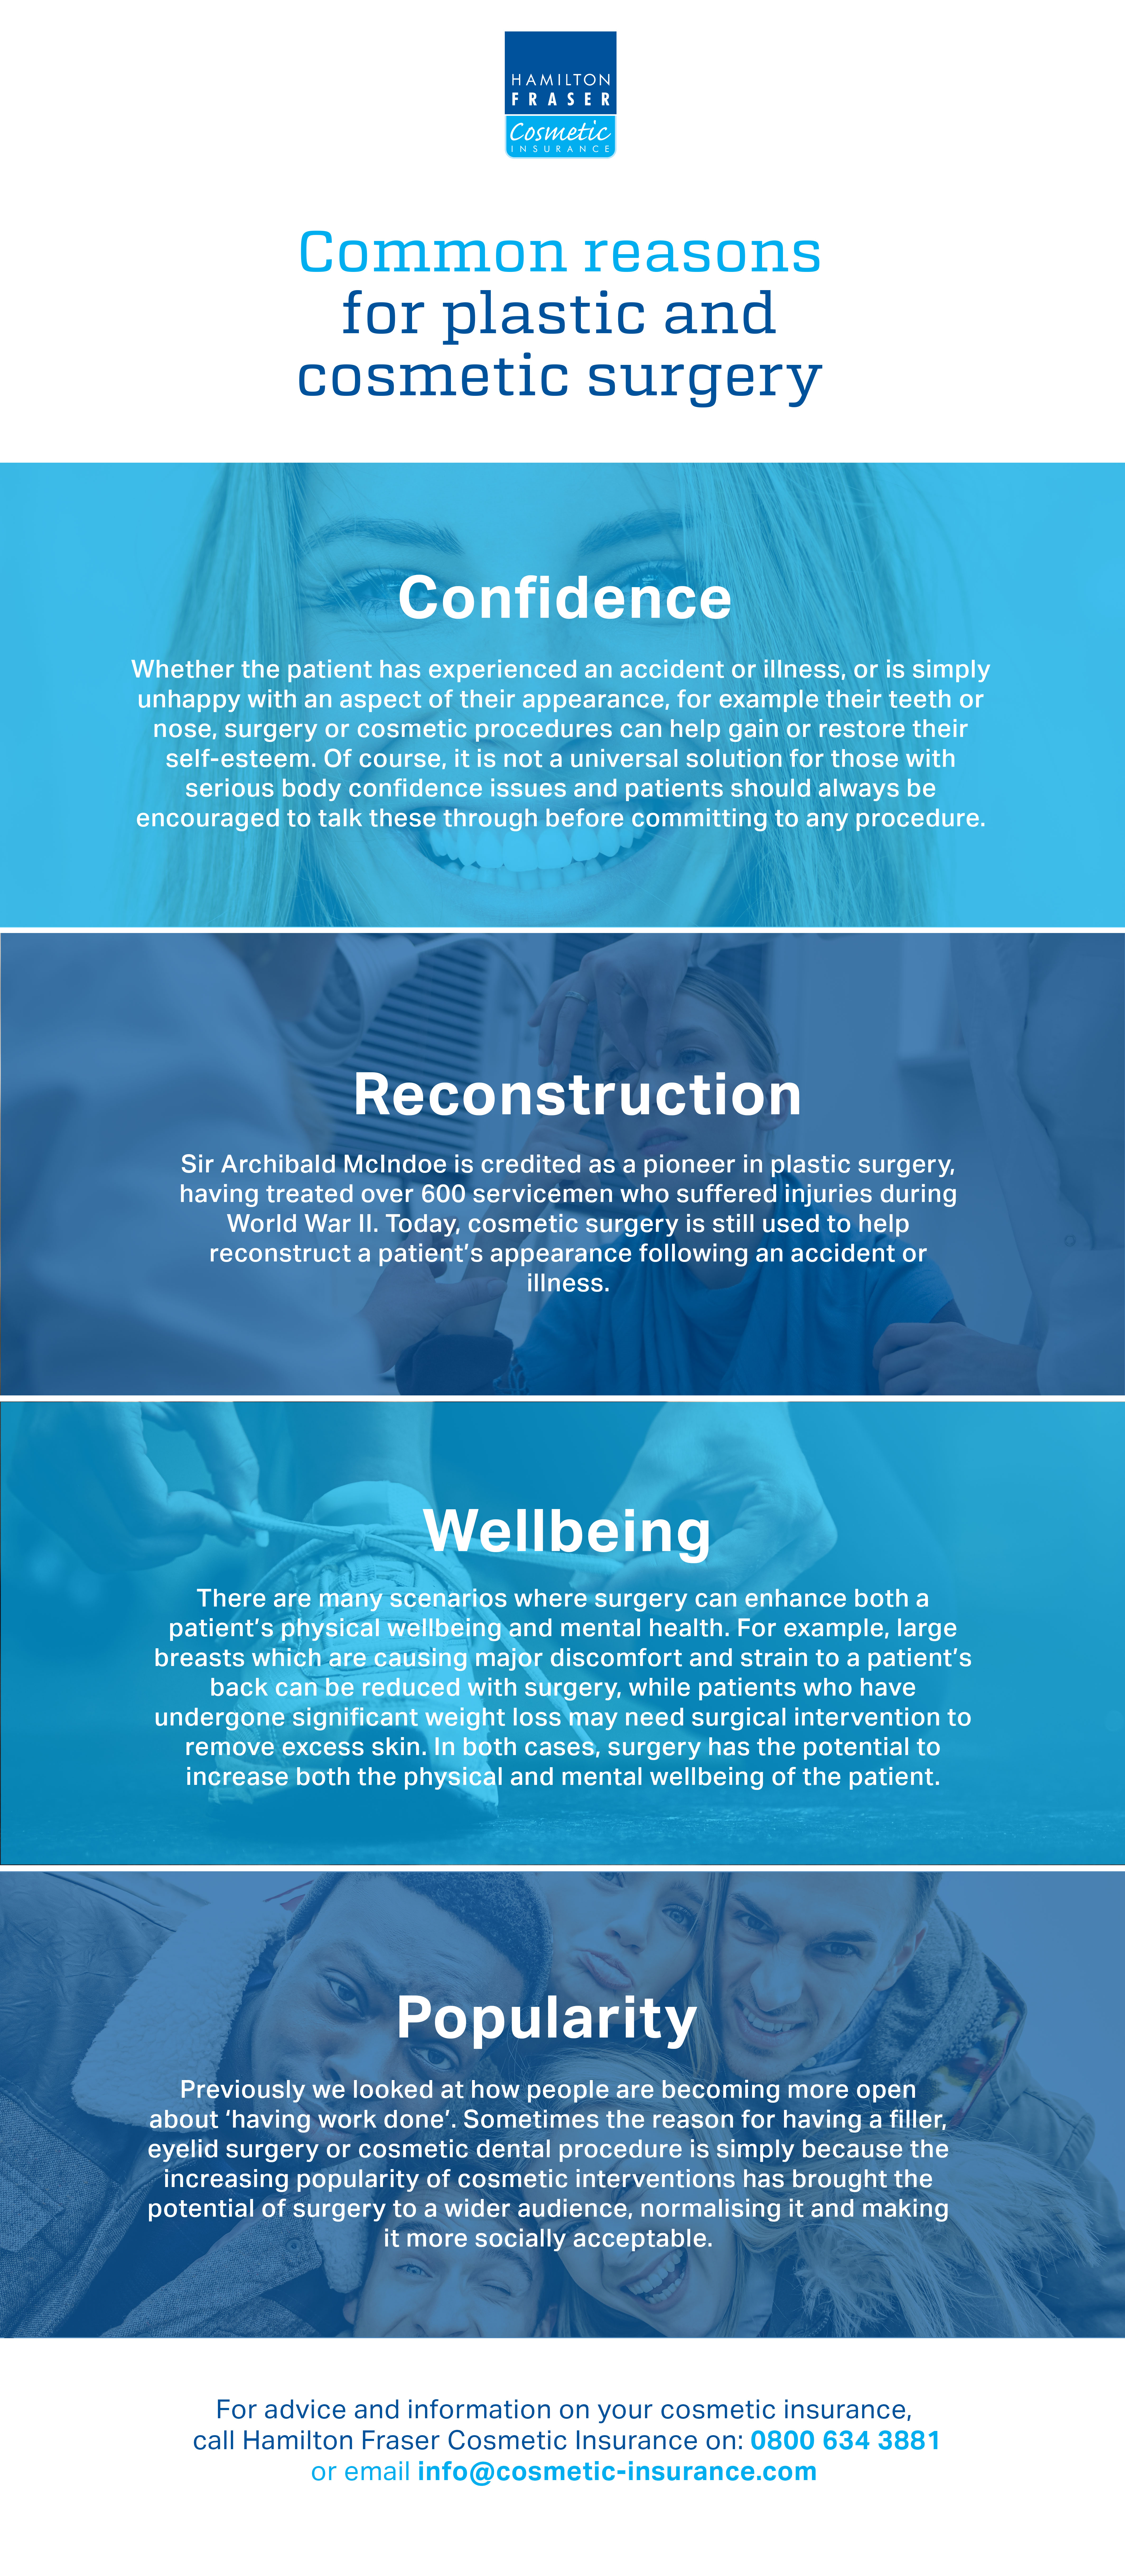 Infographic of the main reasons for having cosmetic surgery and procedures